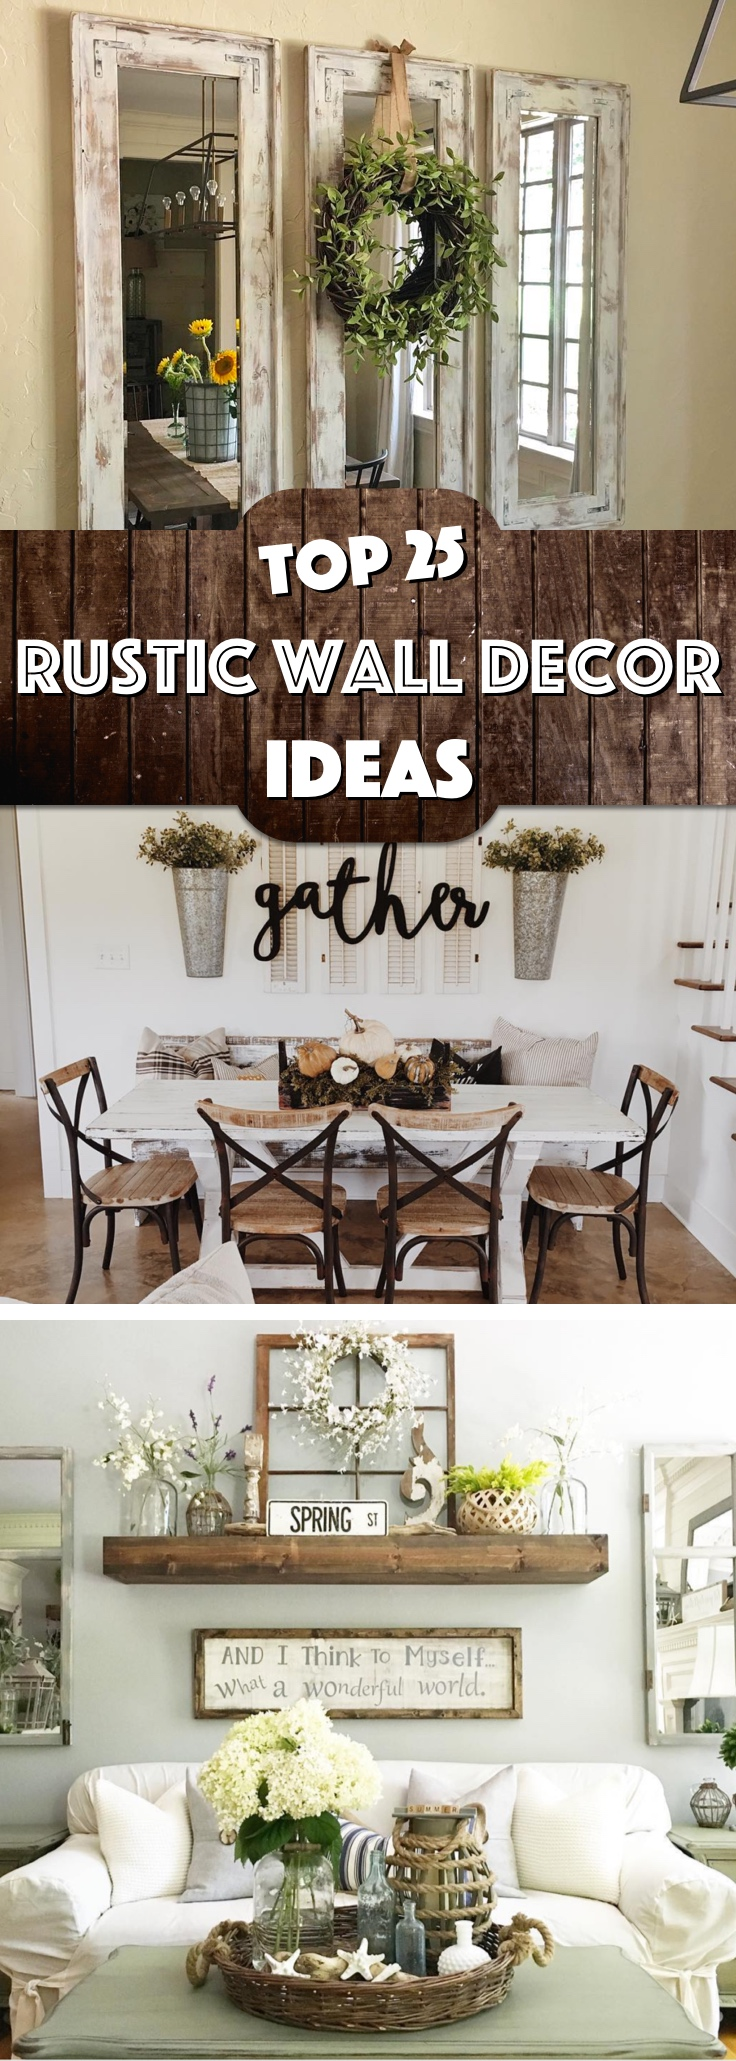 27 Must-Try Rustic Wall Decor Ideas Featuring The Most Amazing